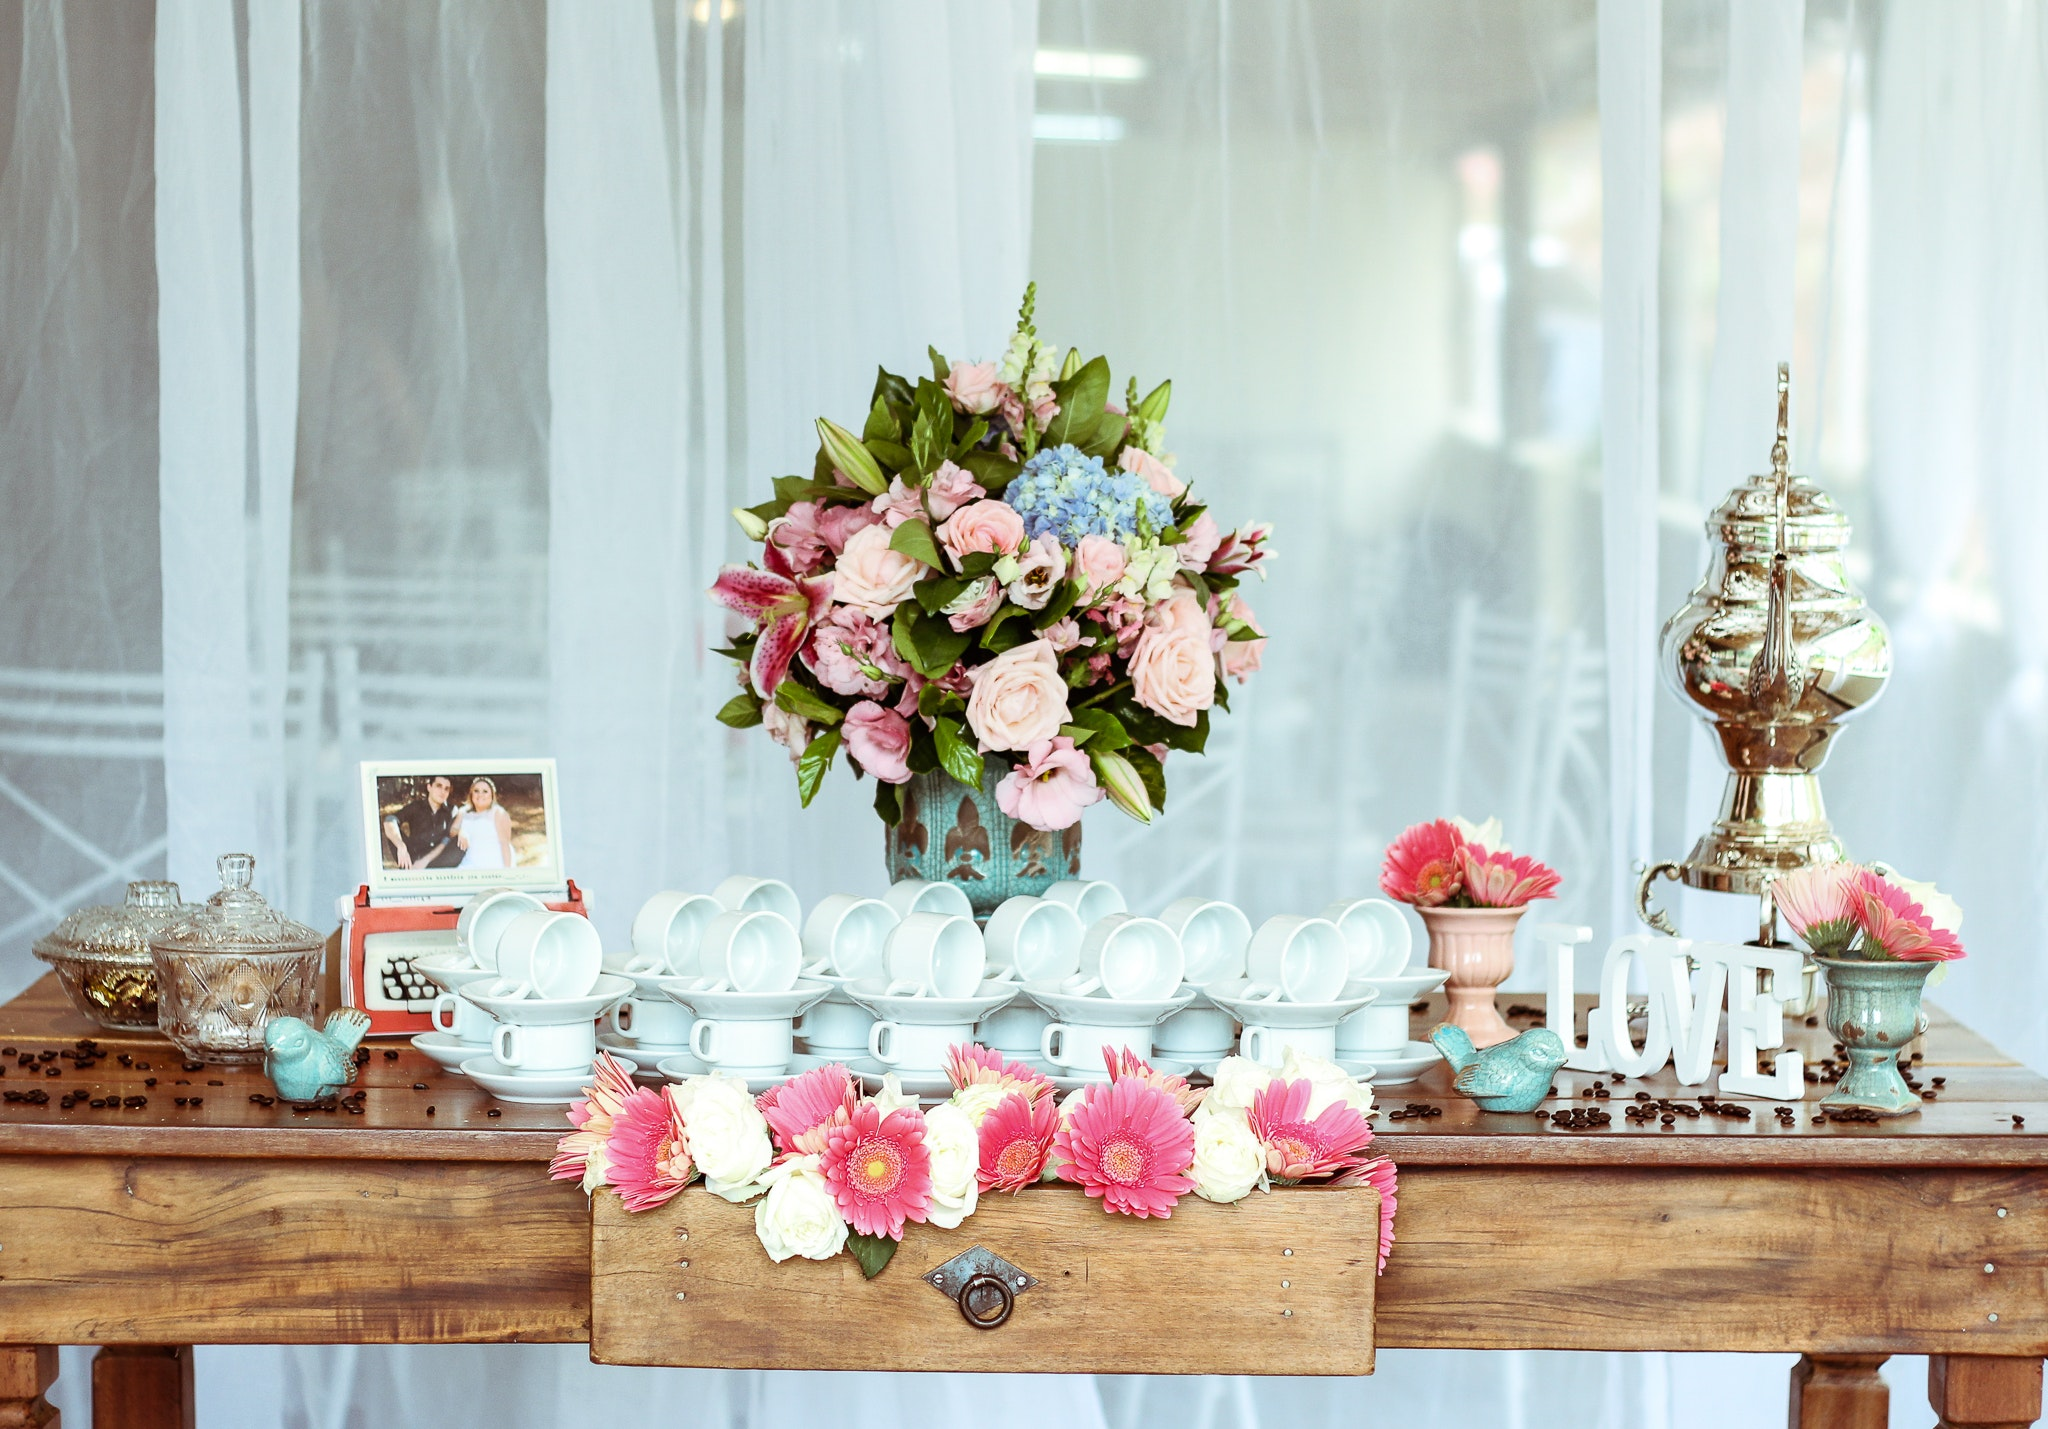 7 Hacks That Will Have Your Wedding Day Decor Lookin' Good